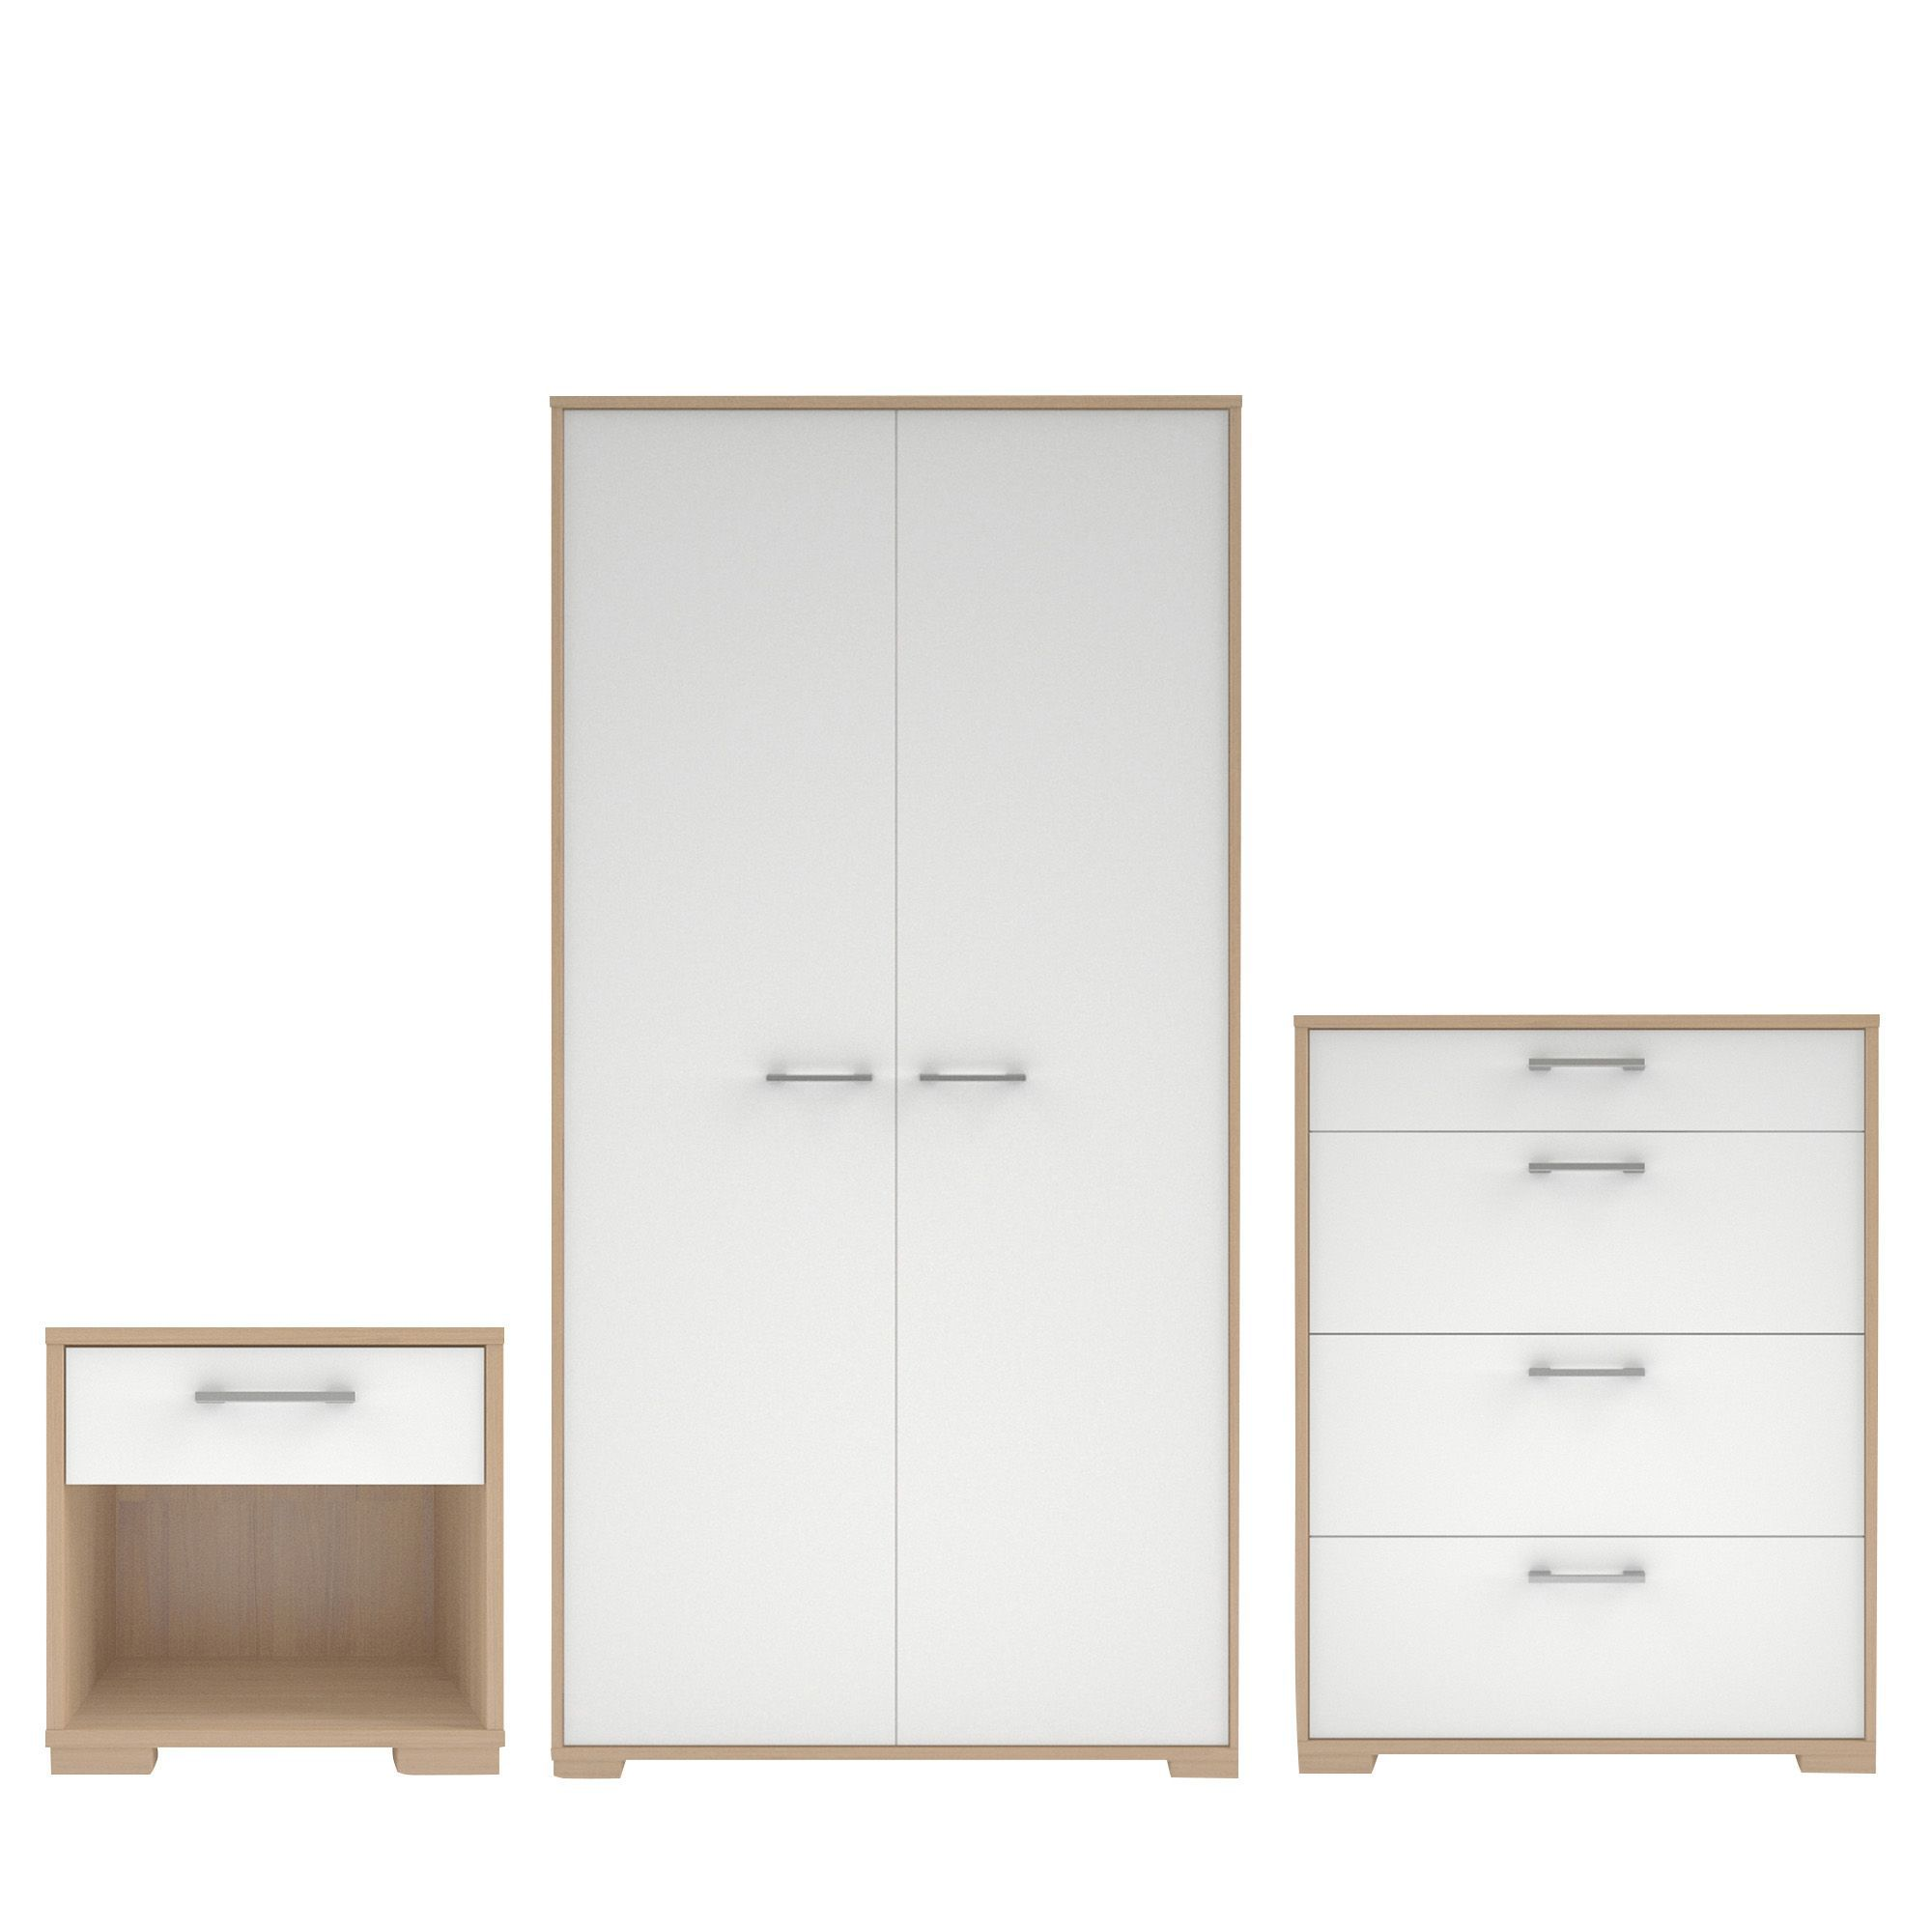 Evie Matt   High Gloss White   Oak Effect 3 Piece Bedroom Furniture Set    Departments   DIY at B Q. Evie Matt   High Gloss White   Oak Effect 3 Piece Bedroom